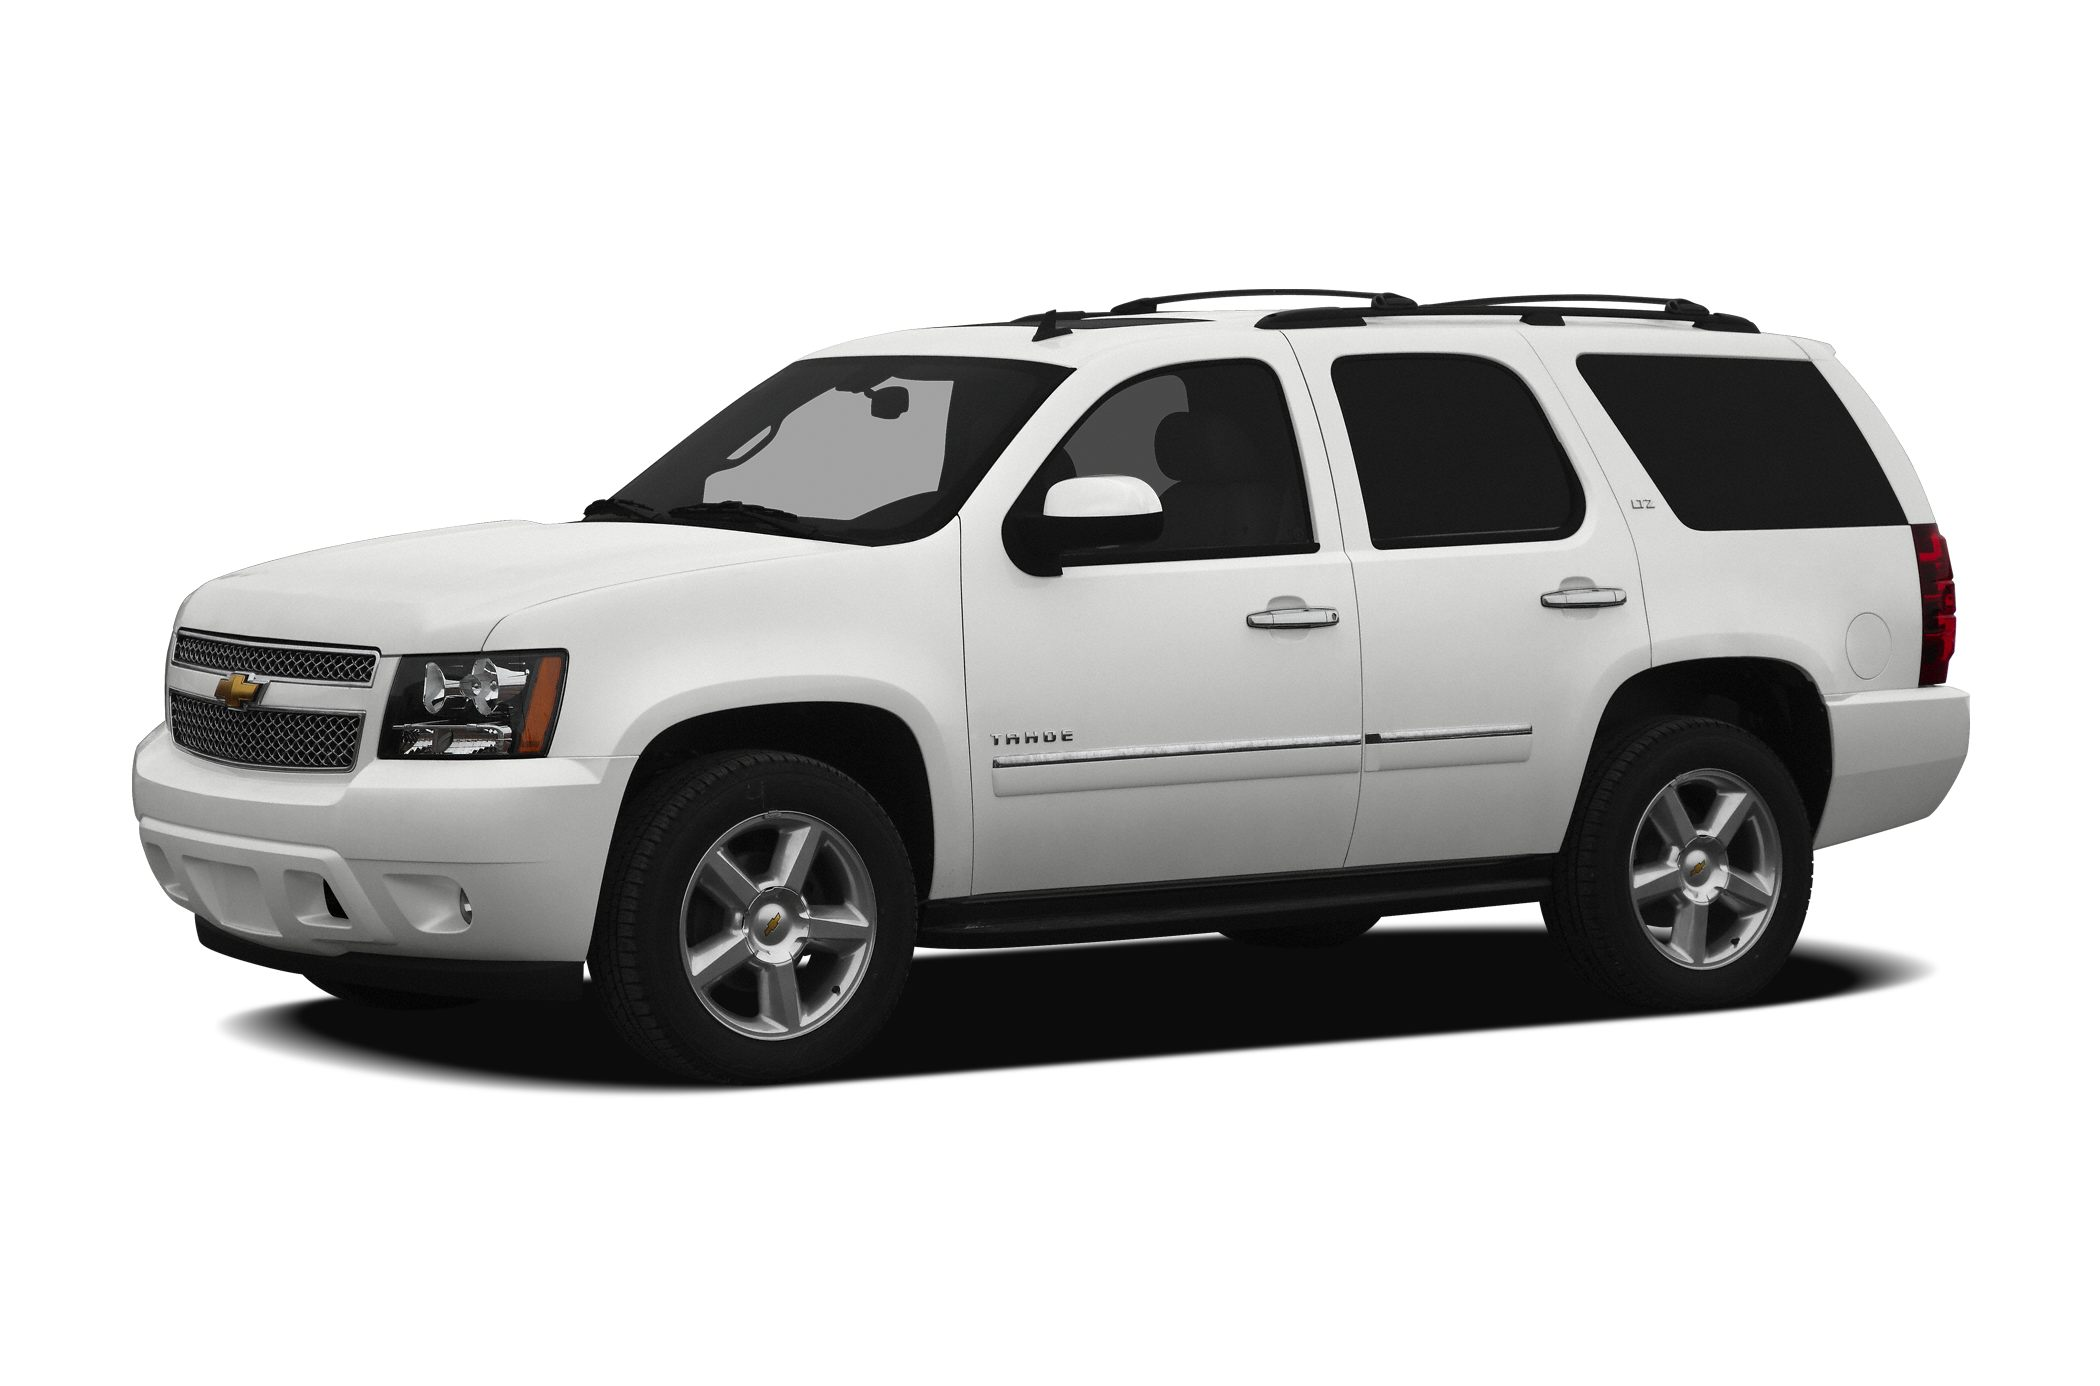 2009 Chevrolet Tahoe LTZ SUV for sale in Kansas City for $23,900 with 120,237 miles